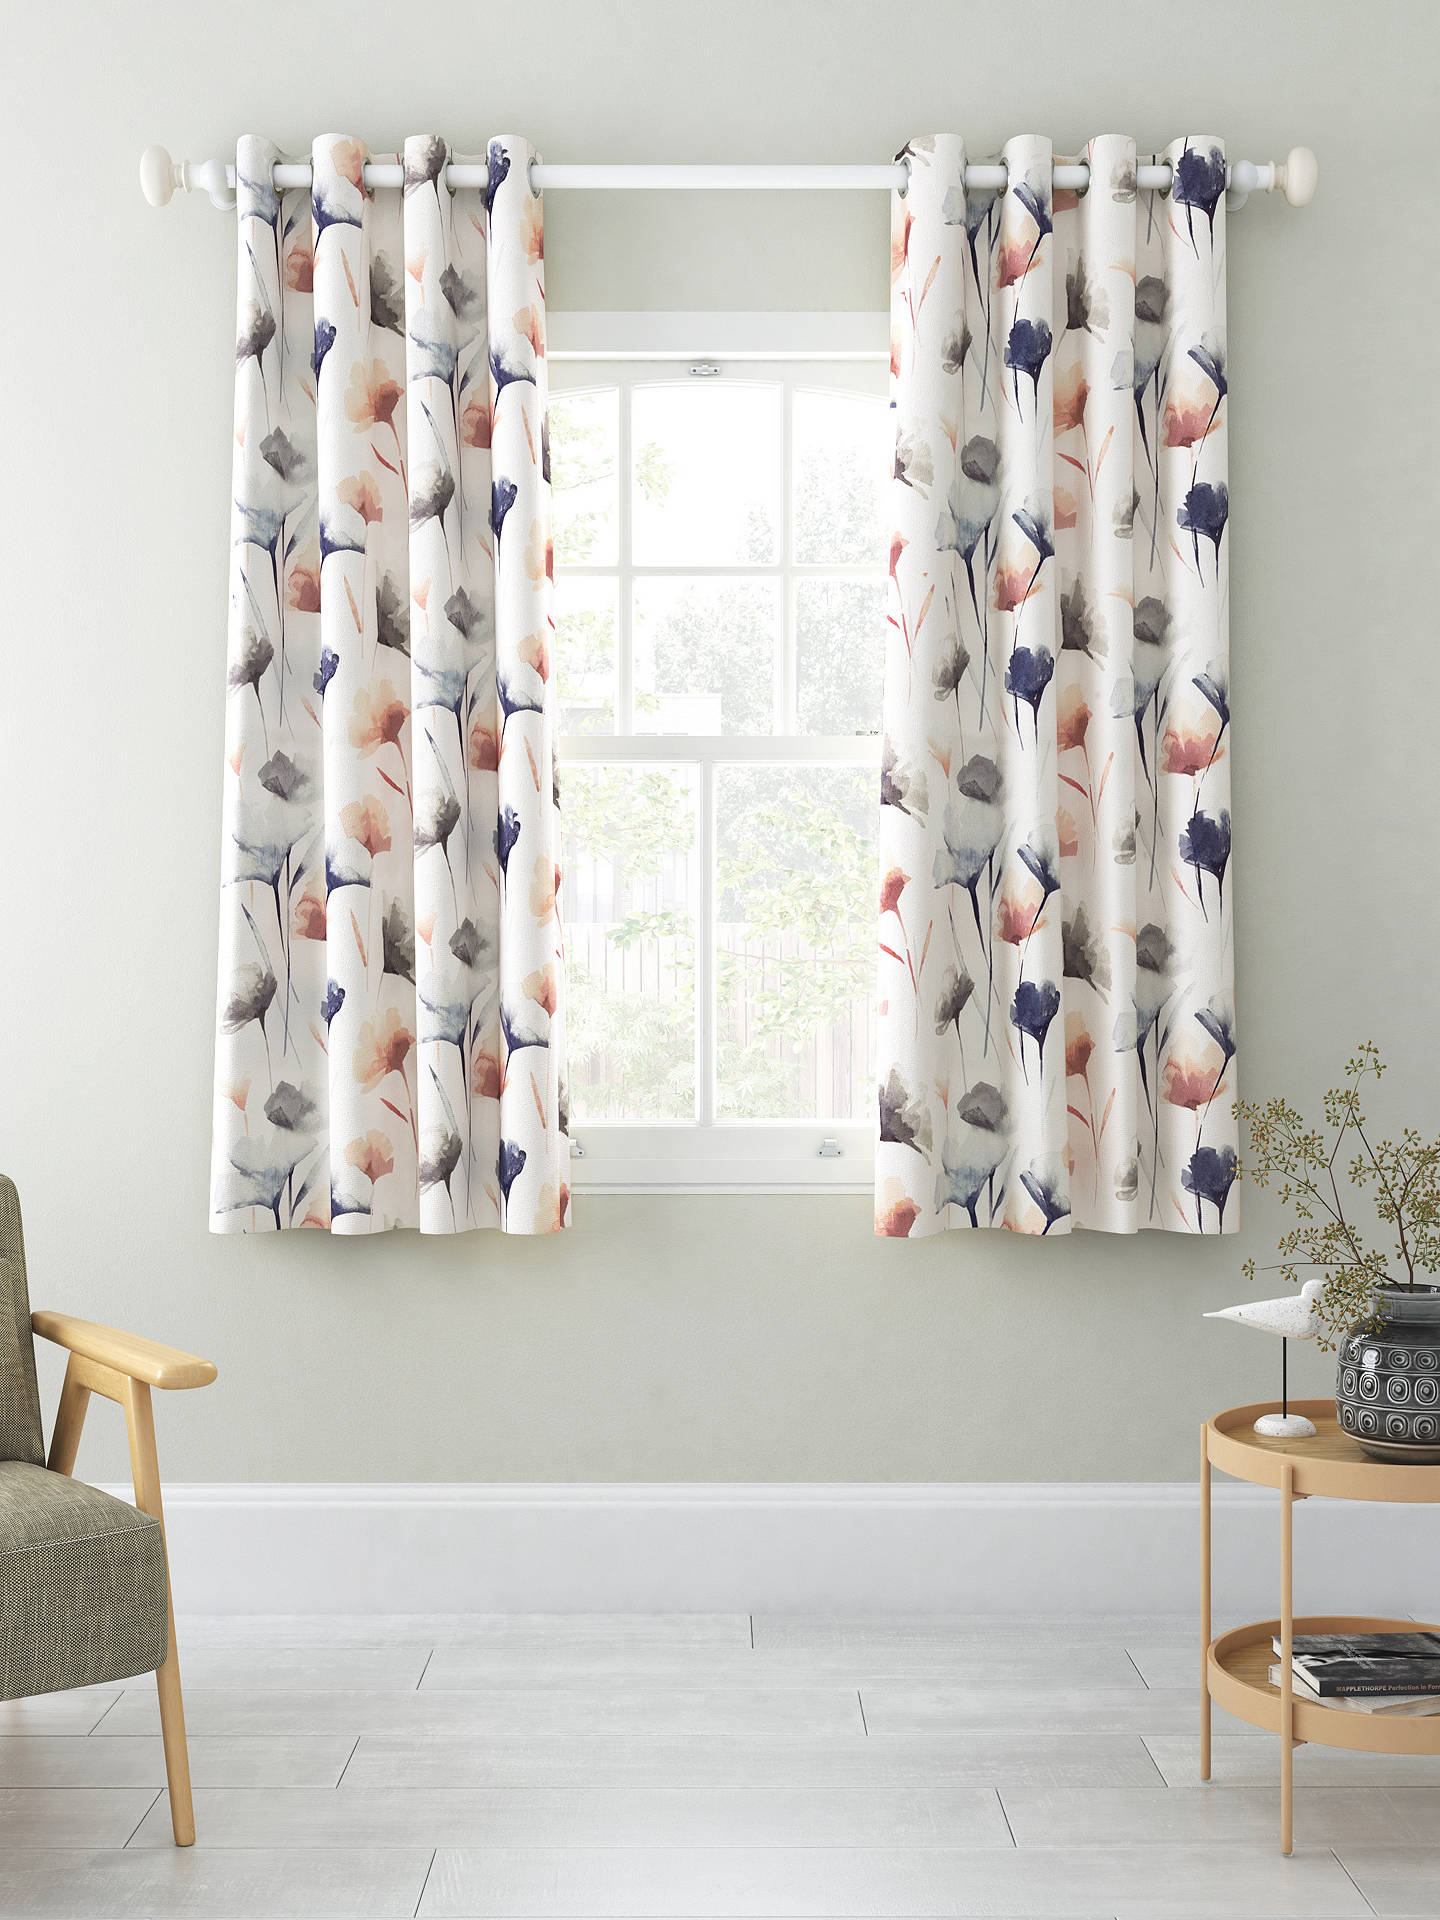 Buy John Lewis & Partners Ginkgo Pair Blackout Lined Eyelet Curtains, Multi, W228 x Drop 137cm Online at johnlewis.com